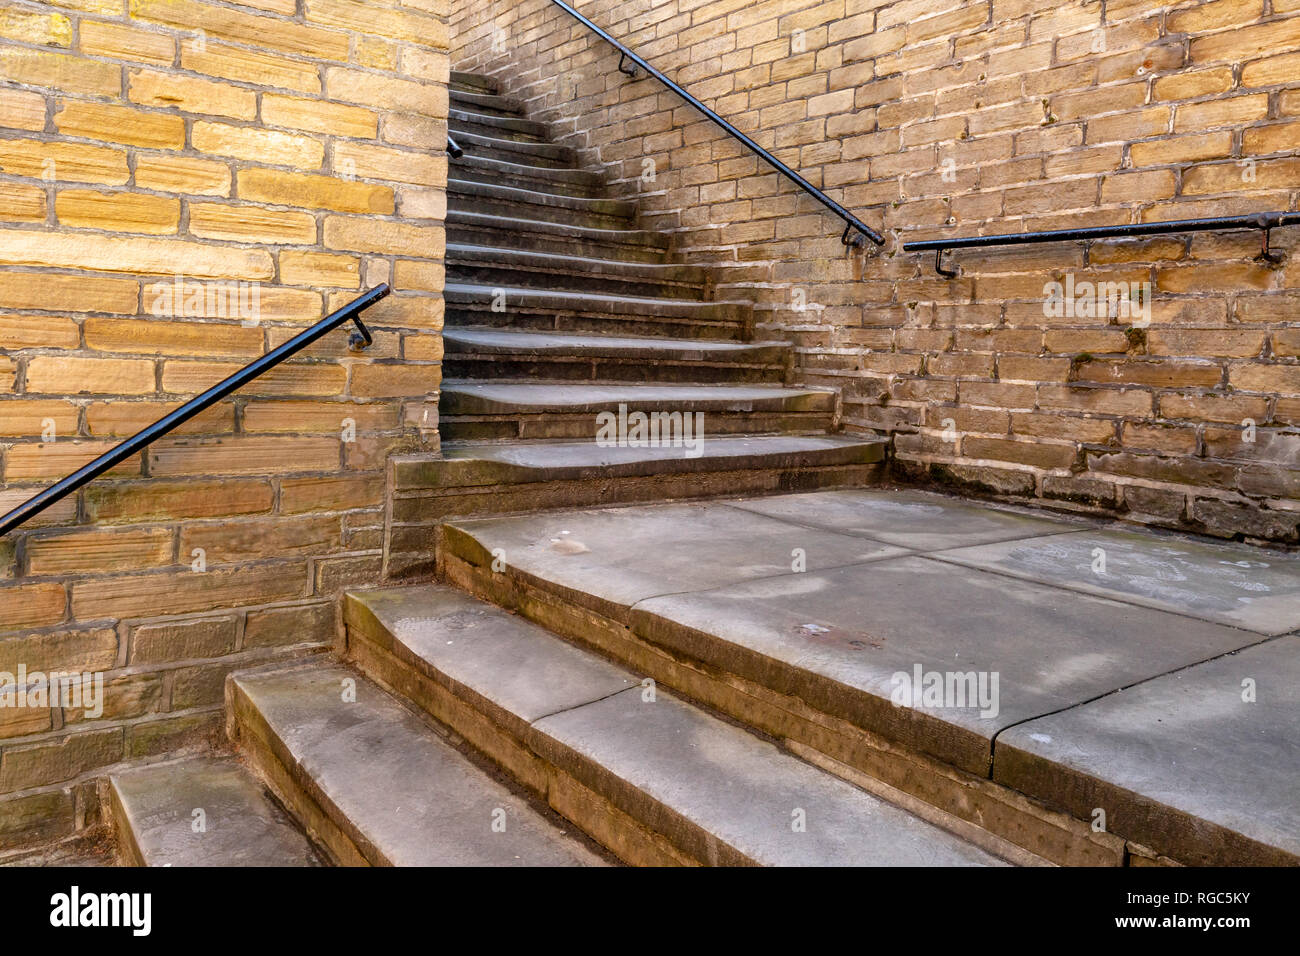 Two sets of outside steps at a right angle to each other, Saltaire, Yorkshire. - Stock Image